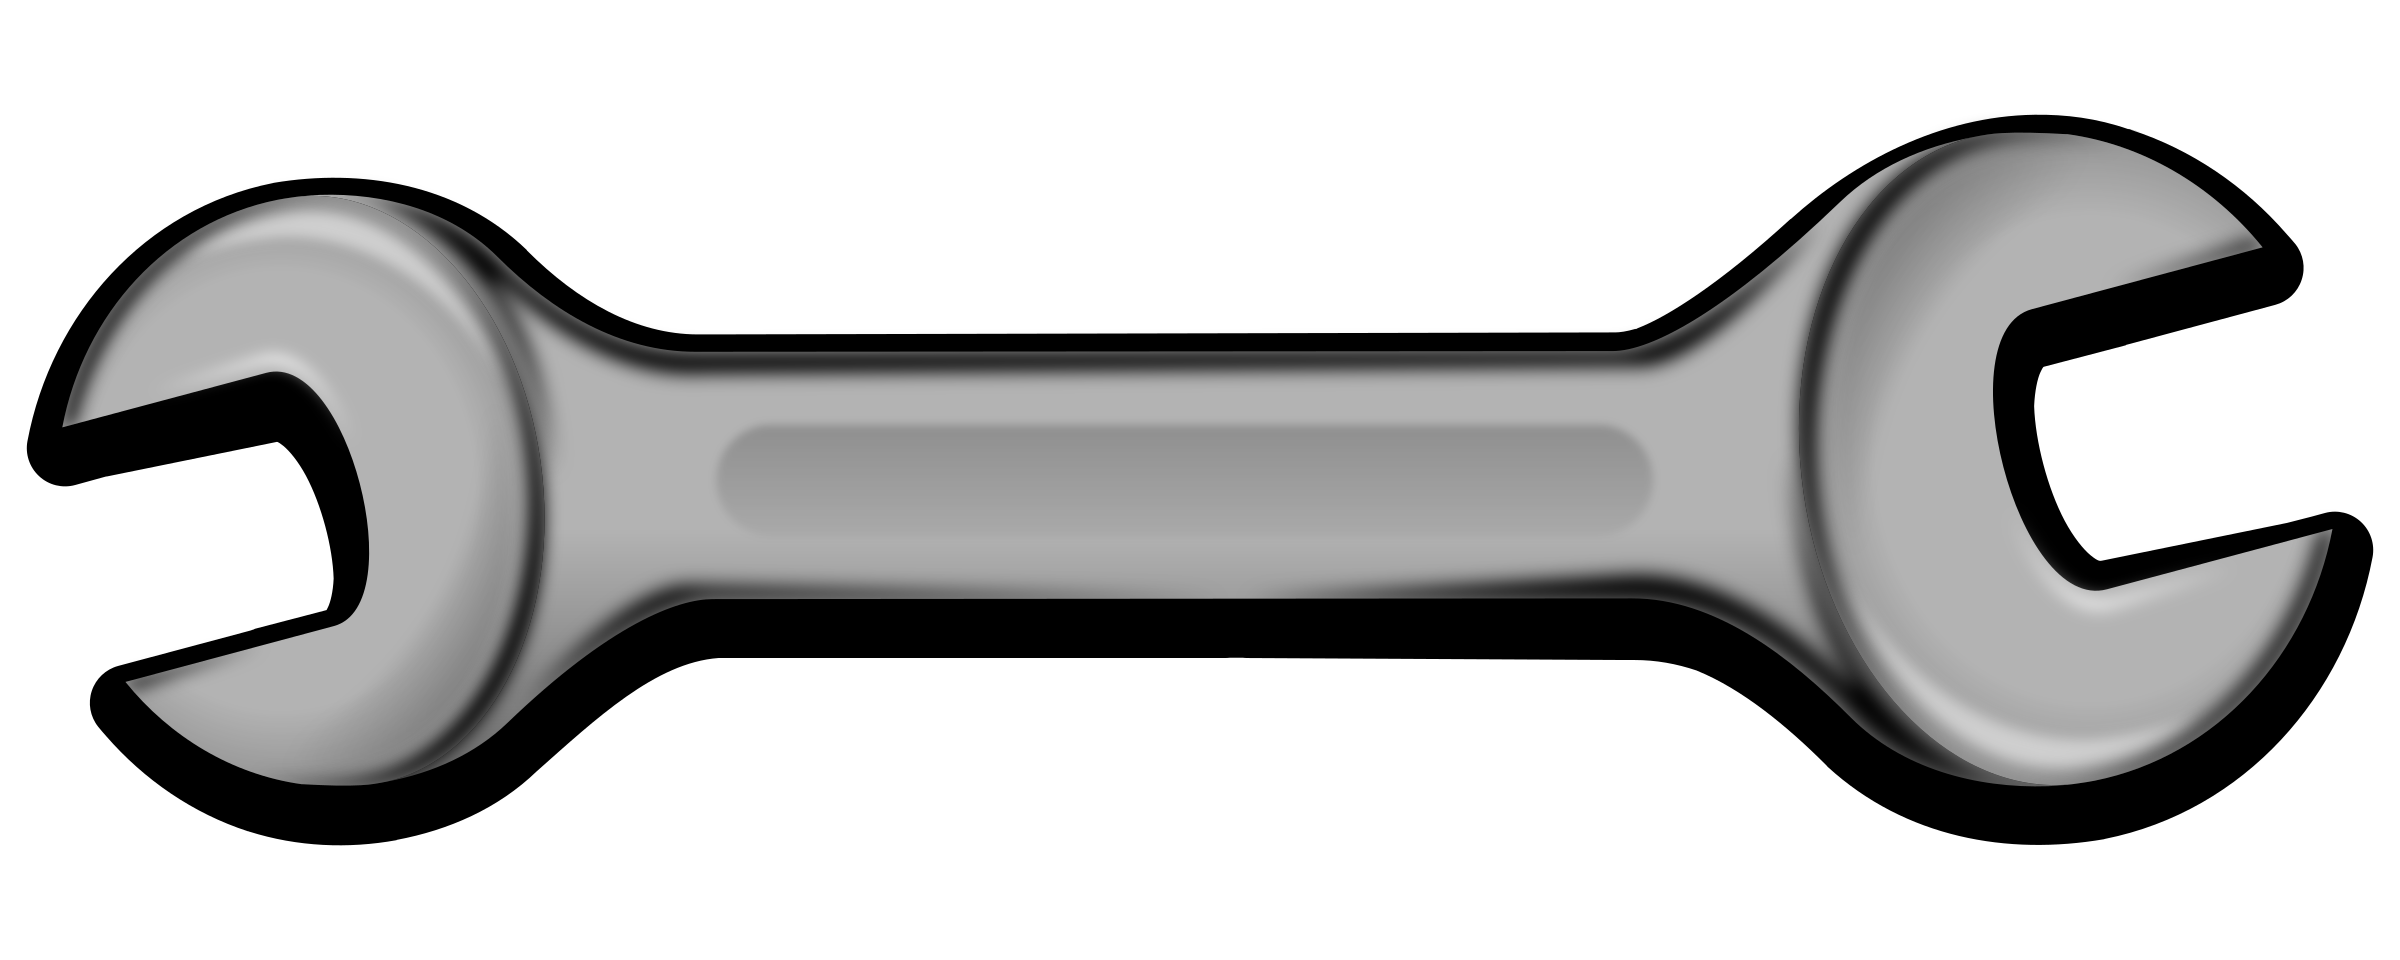 Clipart cars wrench. Png transparent images all